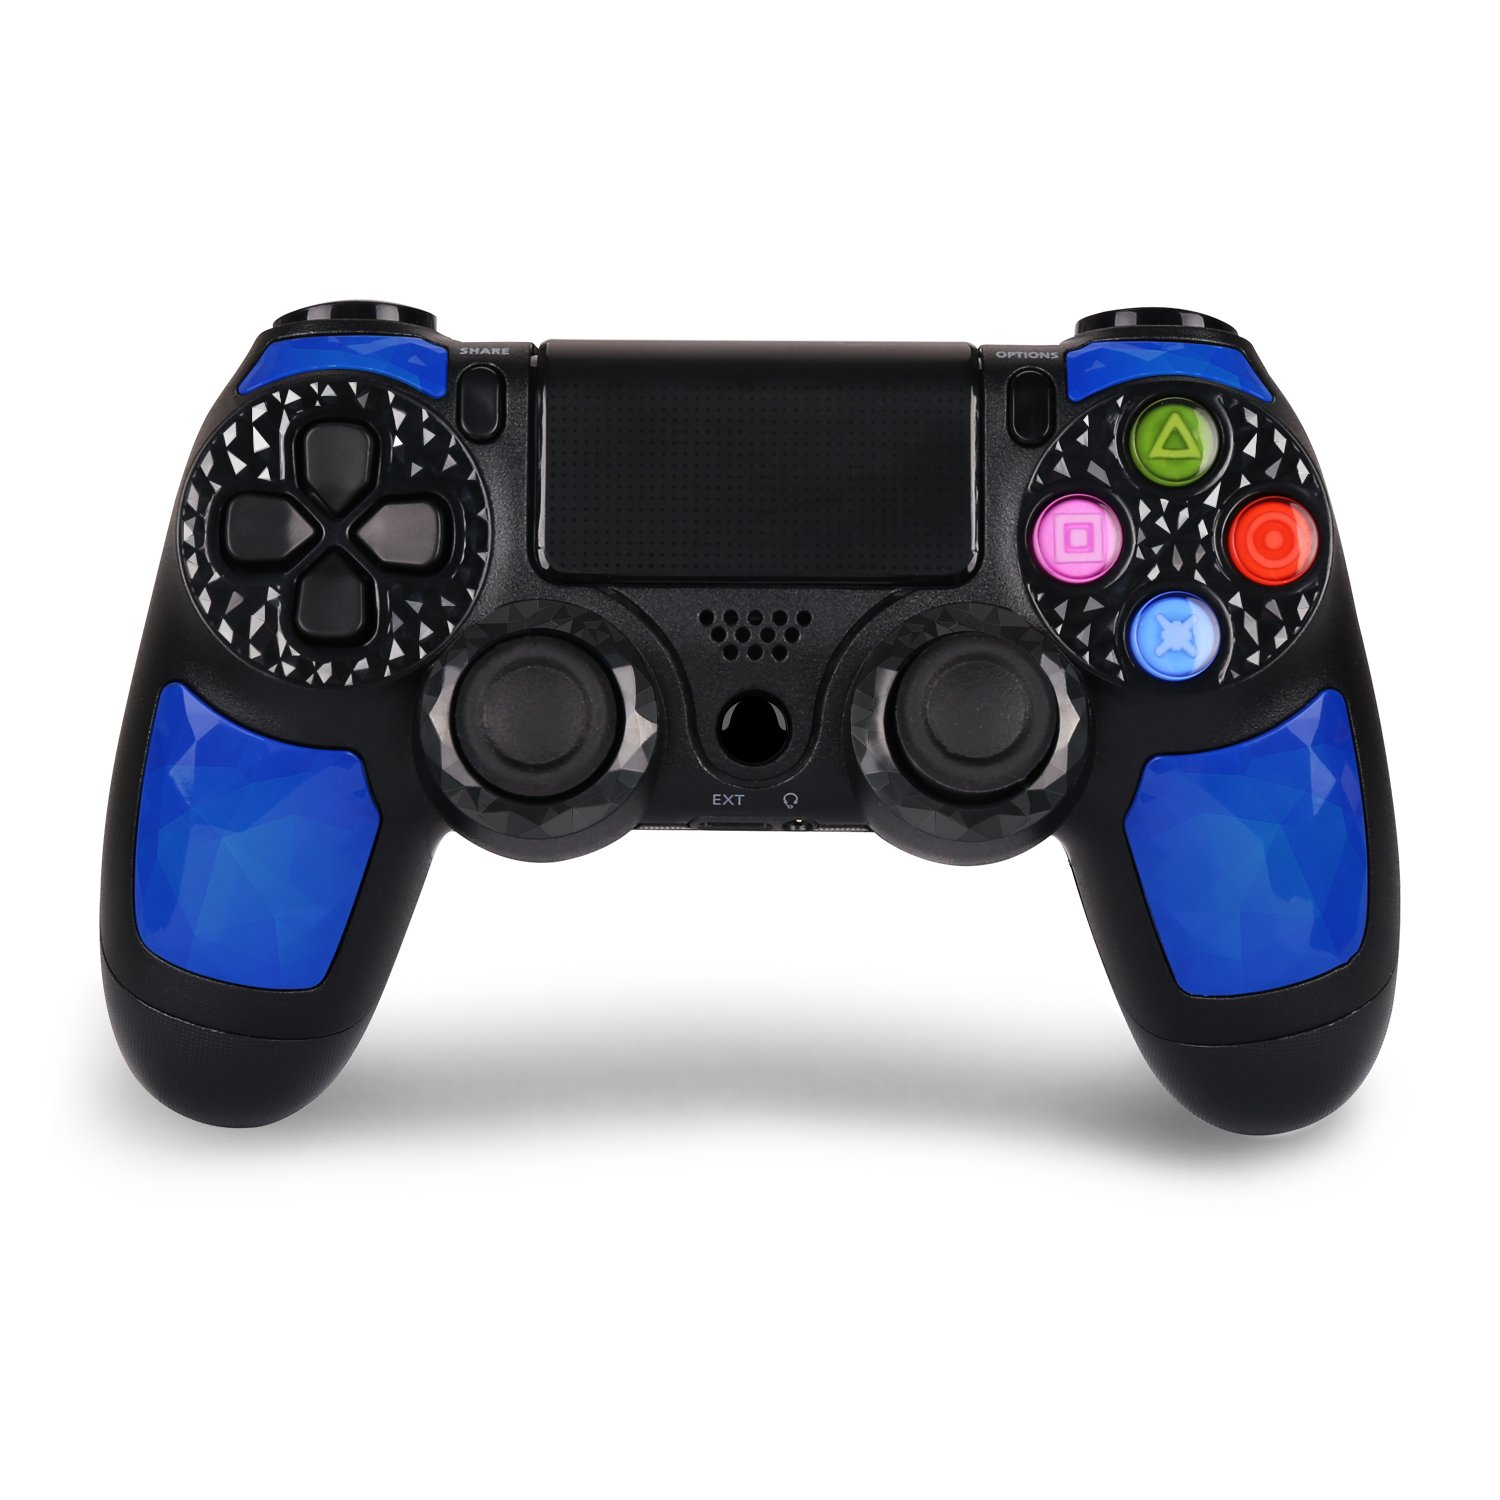 PS4 Controller - Dual Shock 4 Wireless Controller for PlayStation 4 – Joystick with Sixaxis, Bluetooth, Super Power, Micro USB, Multi-touch Clickable Touch Pad- AUGEX Dipsey Diamond